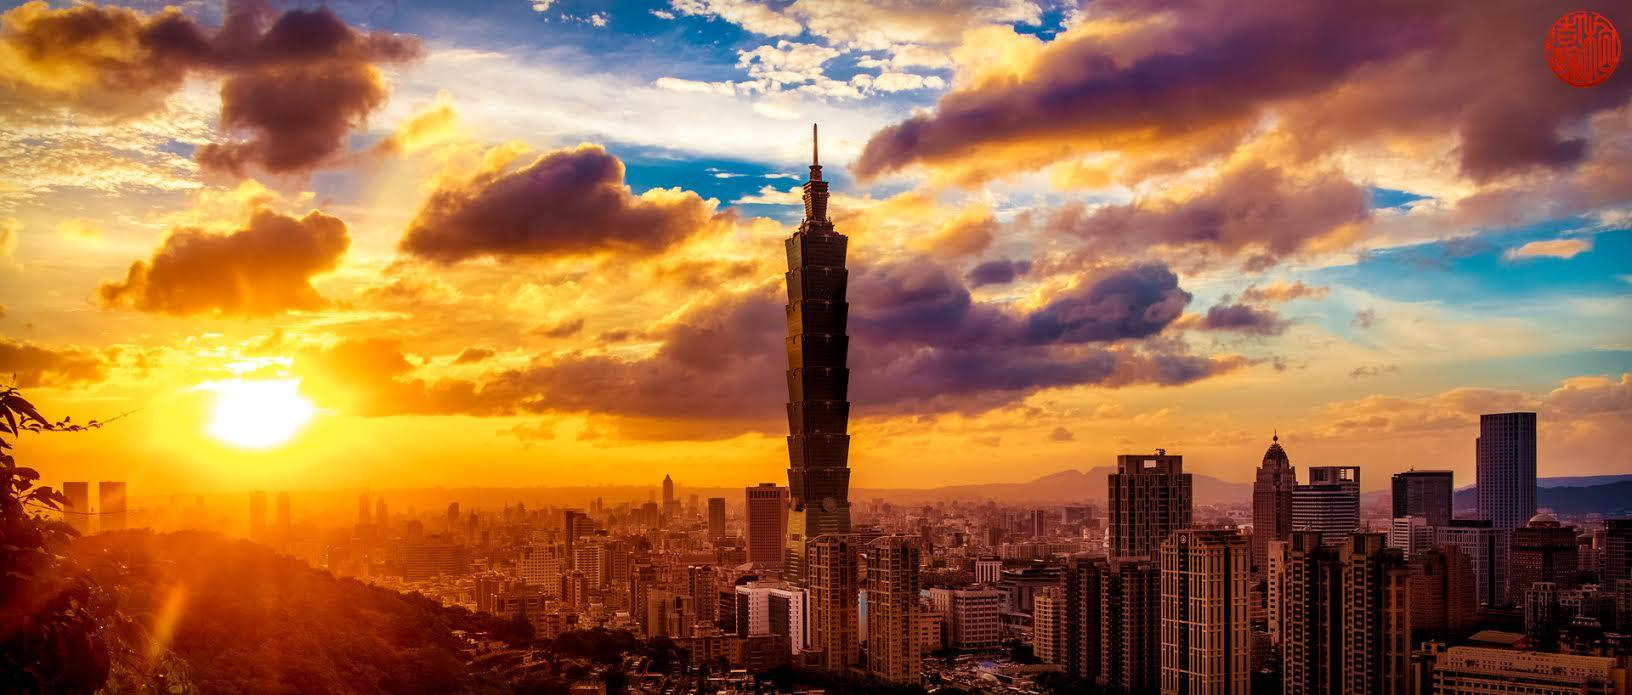 20 Pictures That Will Make You Want To Visit Taiwan